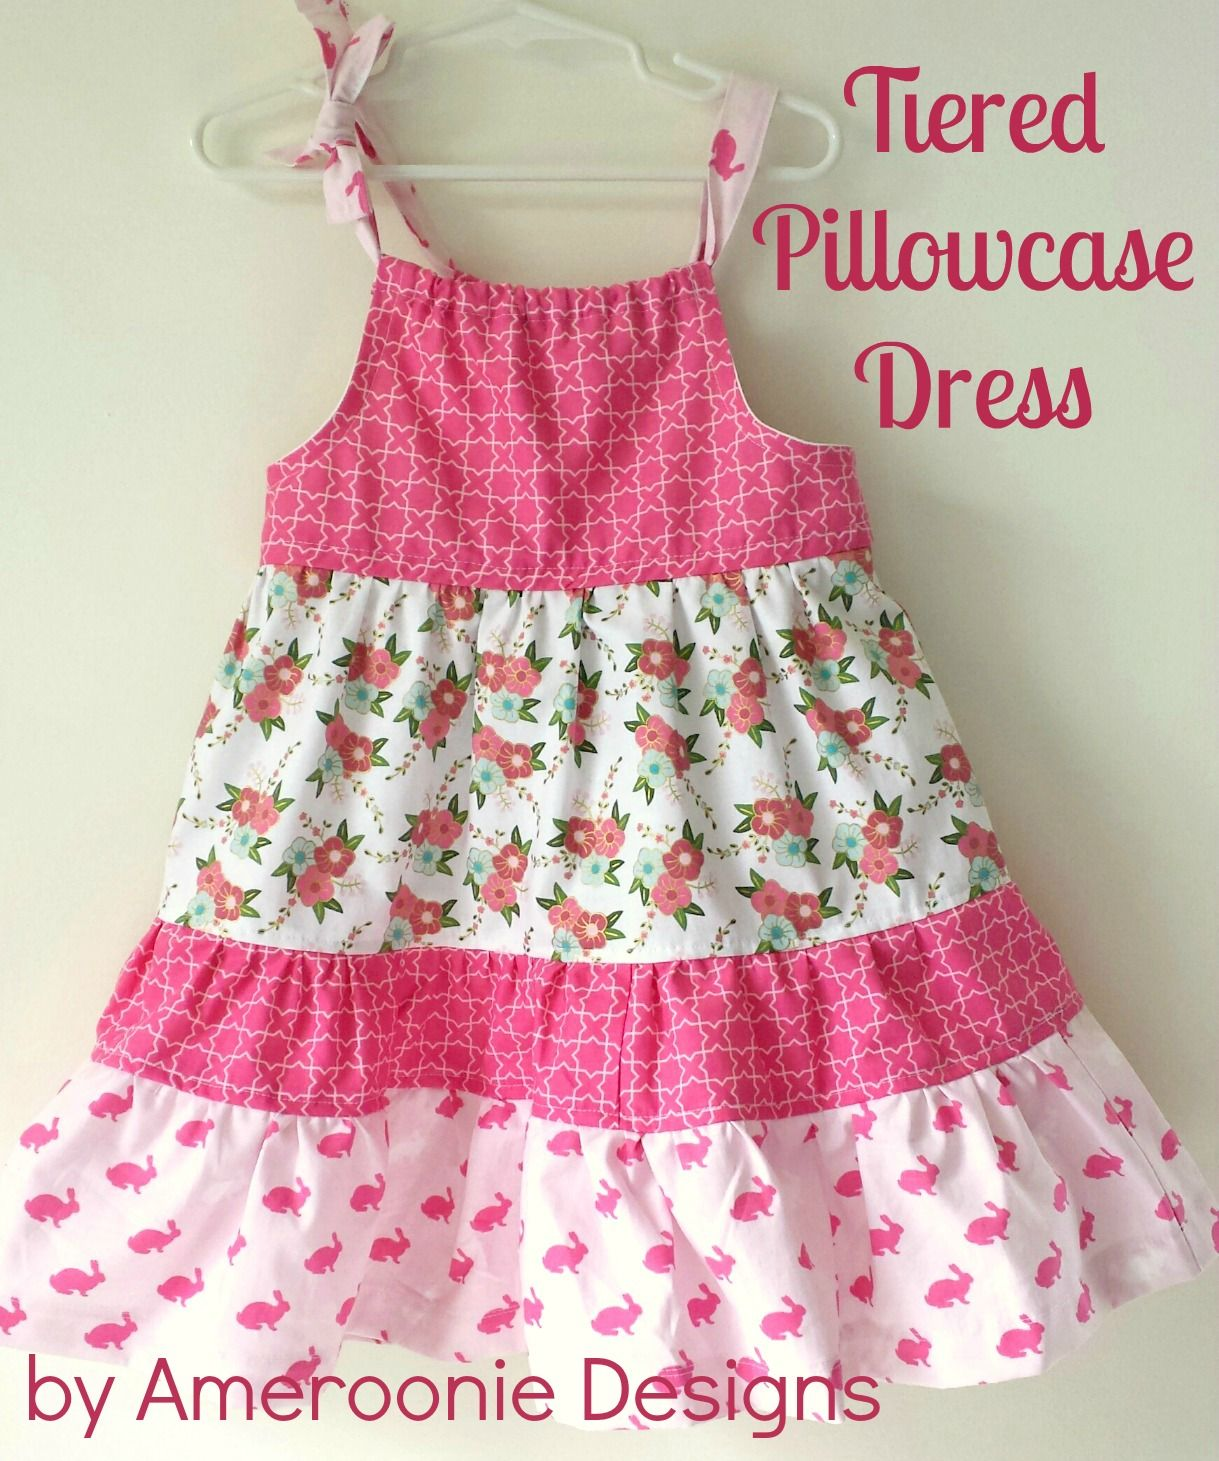 Pillowcase Dress With Band Tutorial: More than 25 Bunny Inspired Sewing Projects   Pillowcases    ,